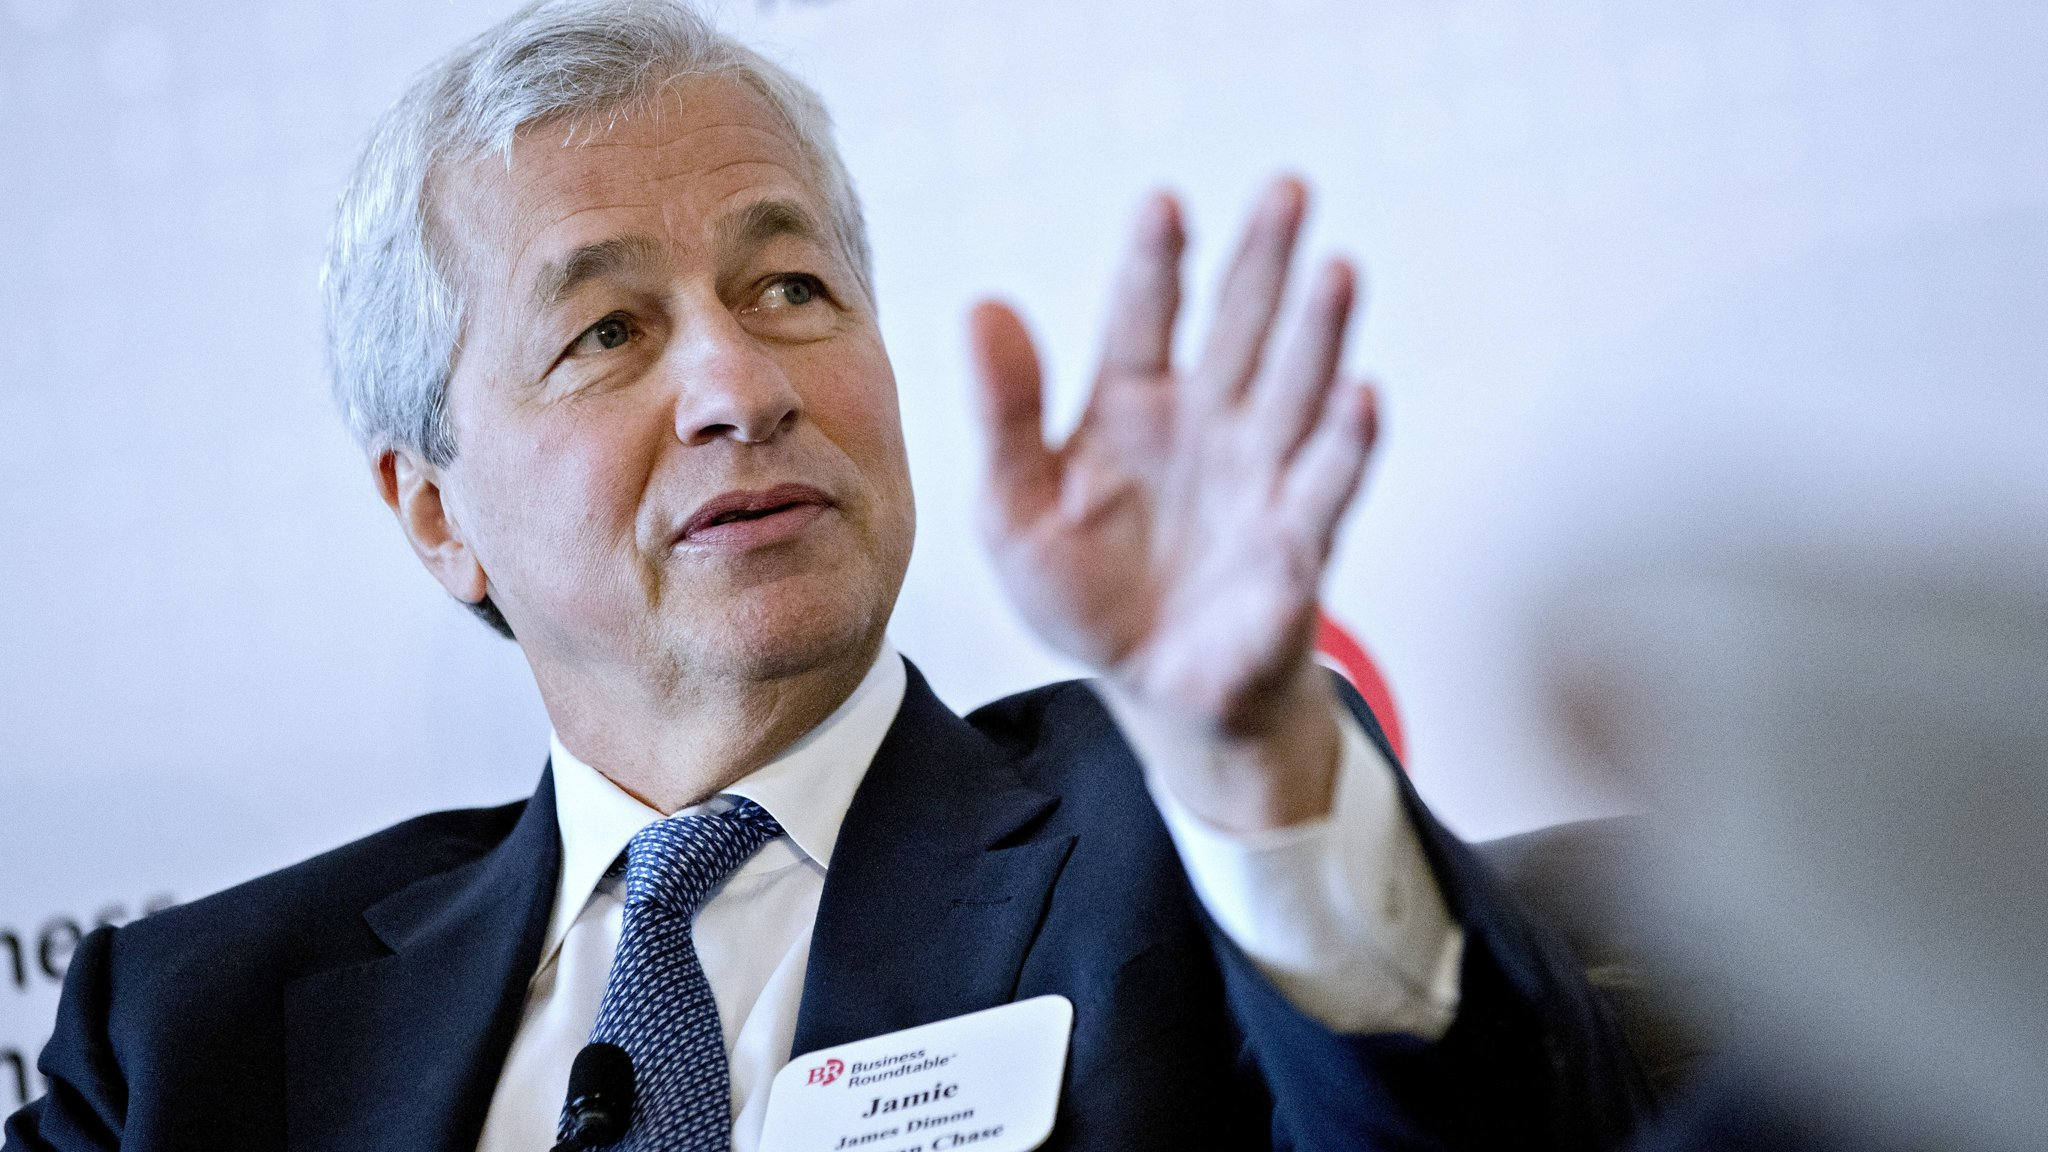 Jamie Dimon's pay package totals $31m in 2018 | Financial Times